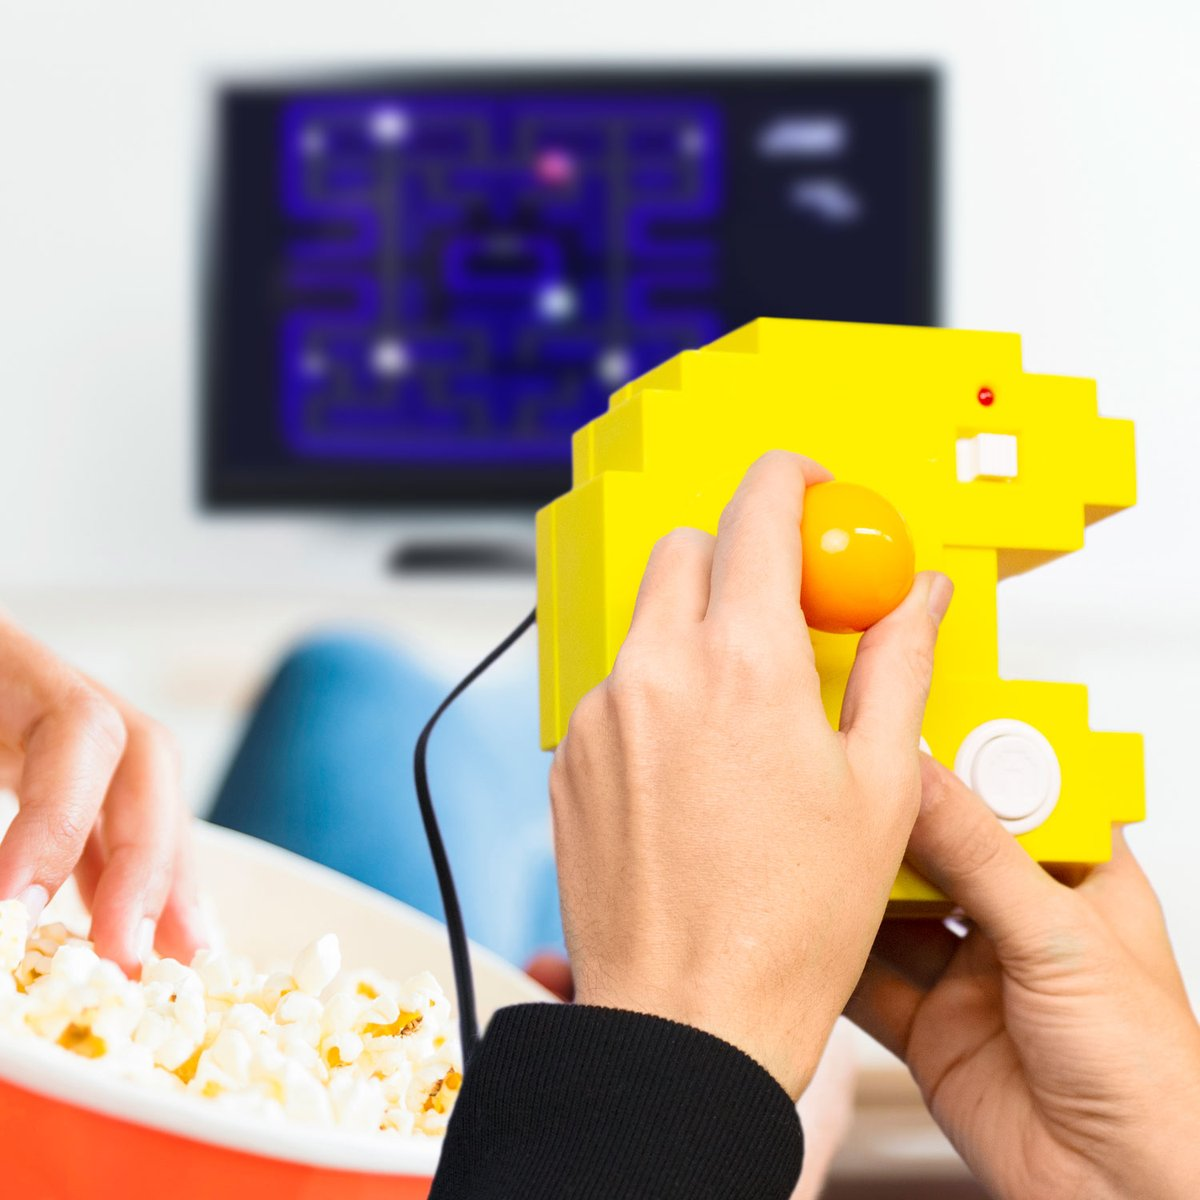 Hey PAC-MAN fans! While at home pass the time with 12 of your favorite retro games on the PAC-MAN Connect and Play! Grab yours now at  https://t.co/CzvVJsA2Xo!   https://t.co/TehyhOpq1W   #BandaiAmerica #PACMAN #ConnectAndPlay https://t.co/WUUn8FXsEh